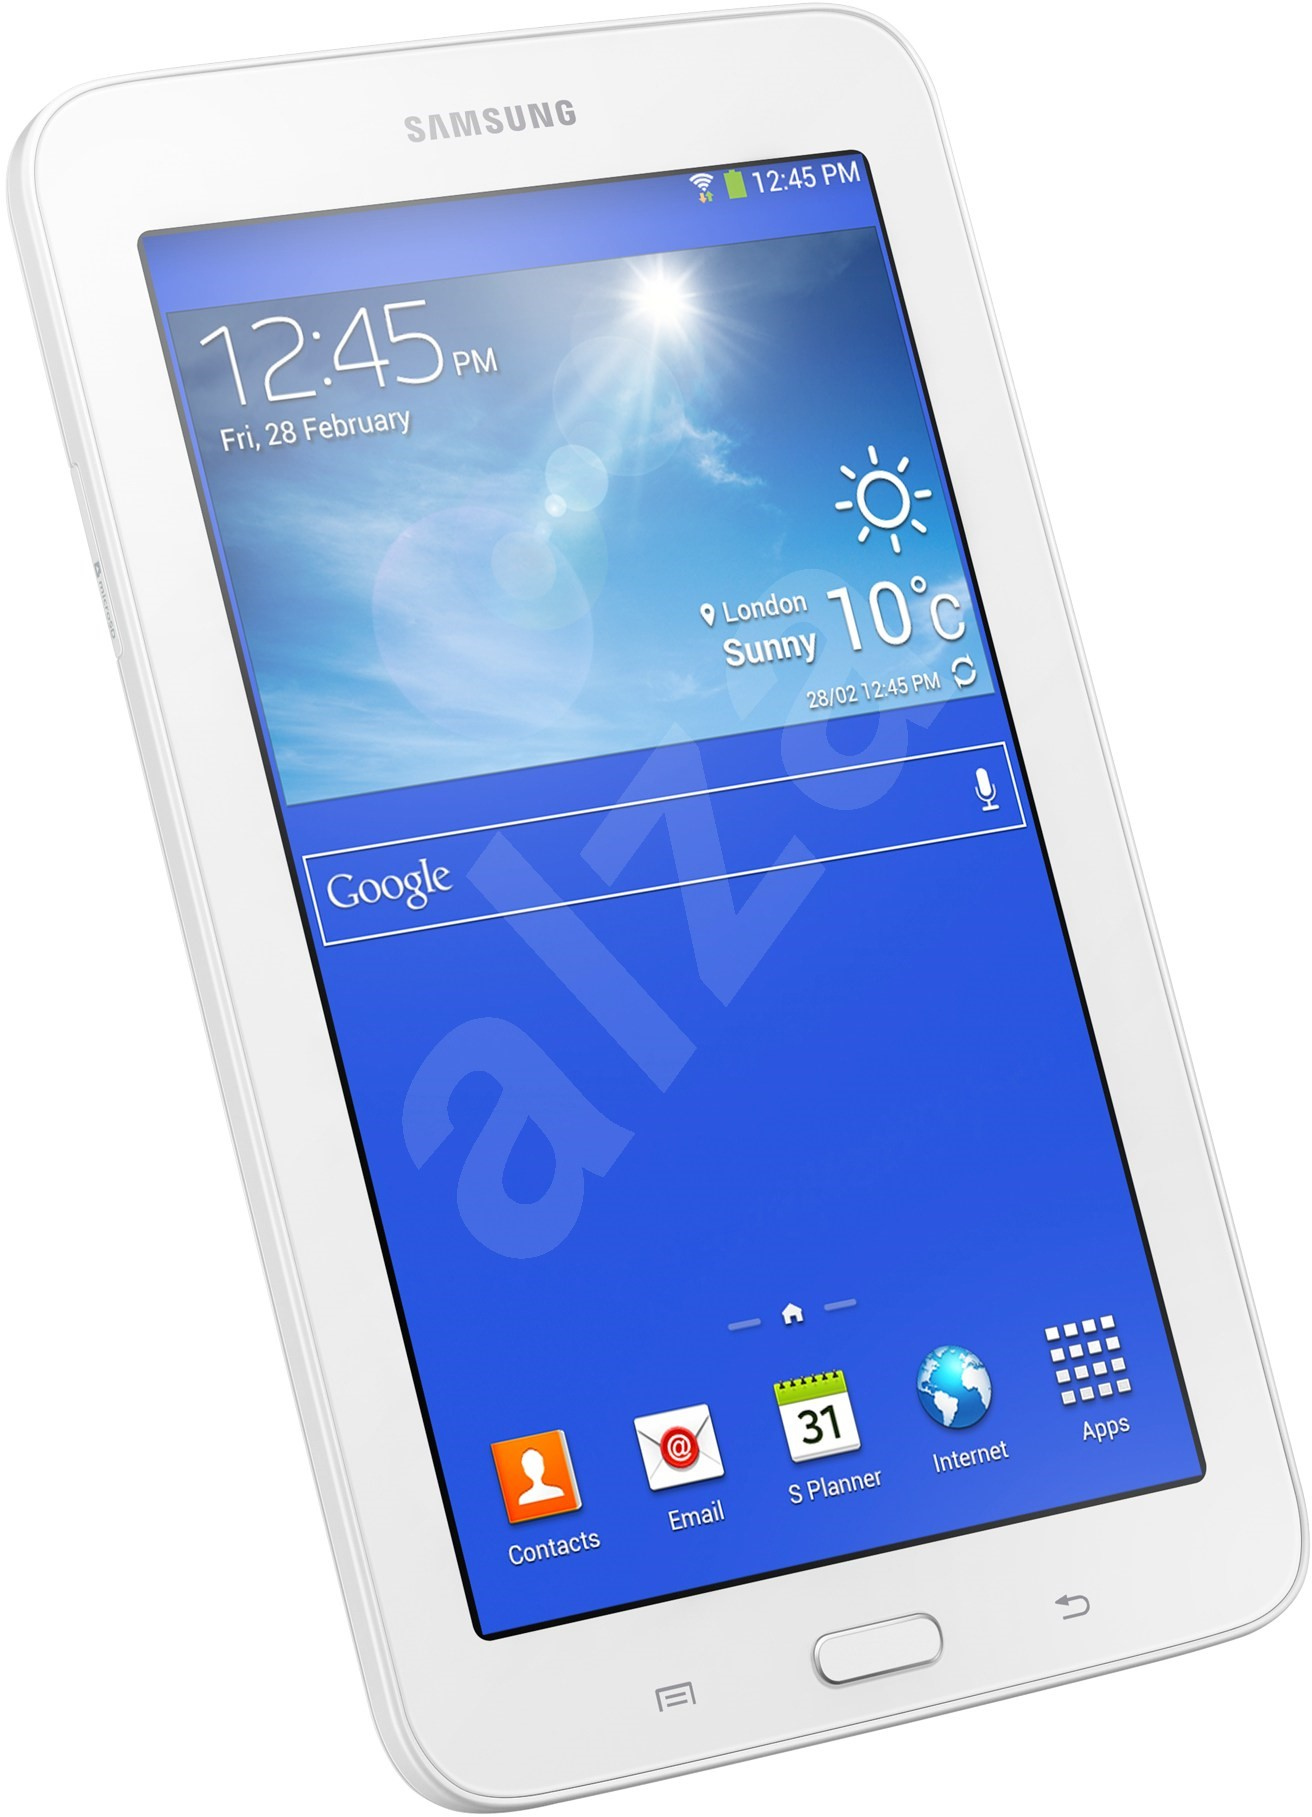 samsung galaxy tab 3 7 0 lite wifi white 8gb sm t110 tablet. Black Bedroom Furniture Sets. Home Design Ideas